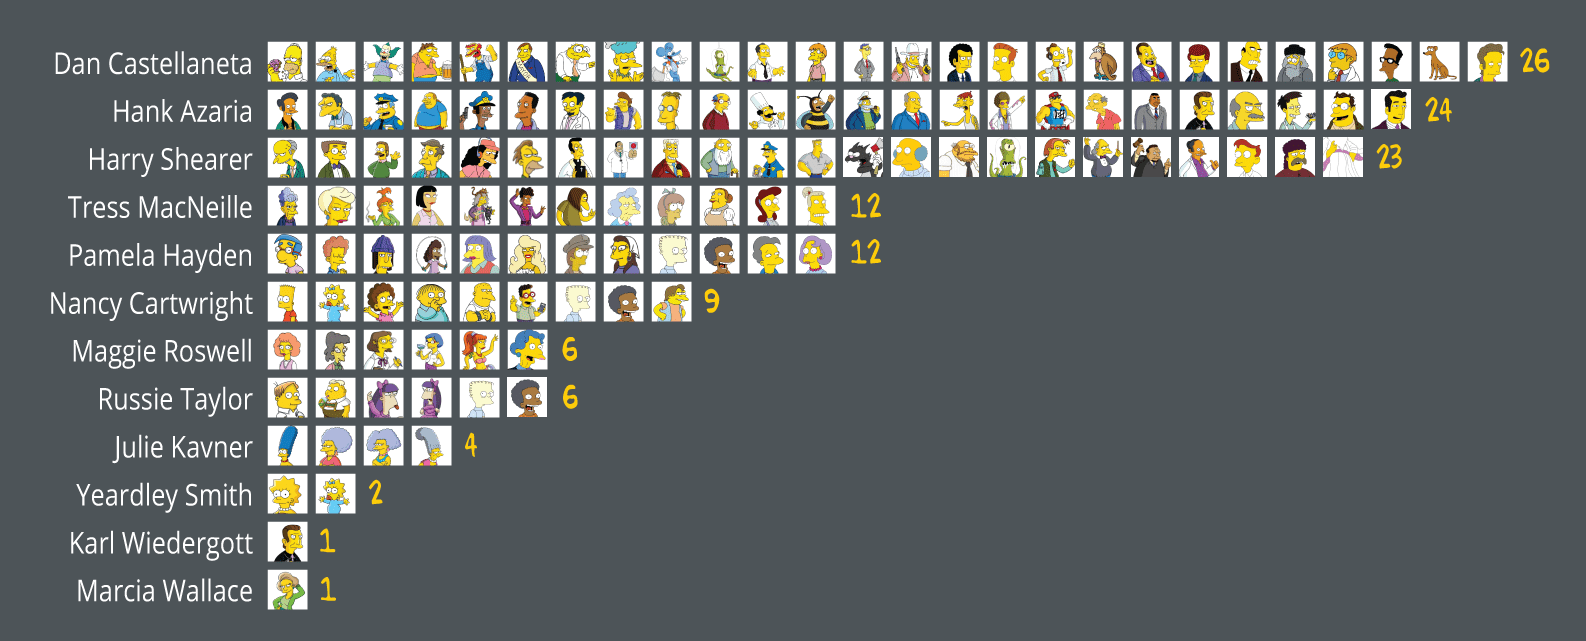 the-simpsons-12-actors-play-over-100-characters-1421755882.41-9610908